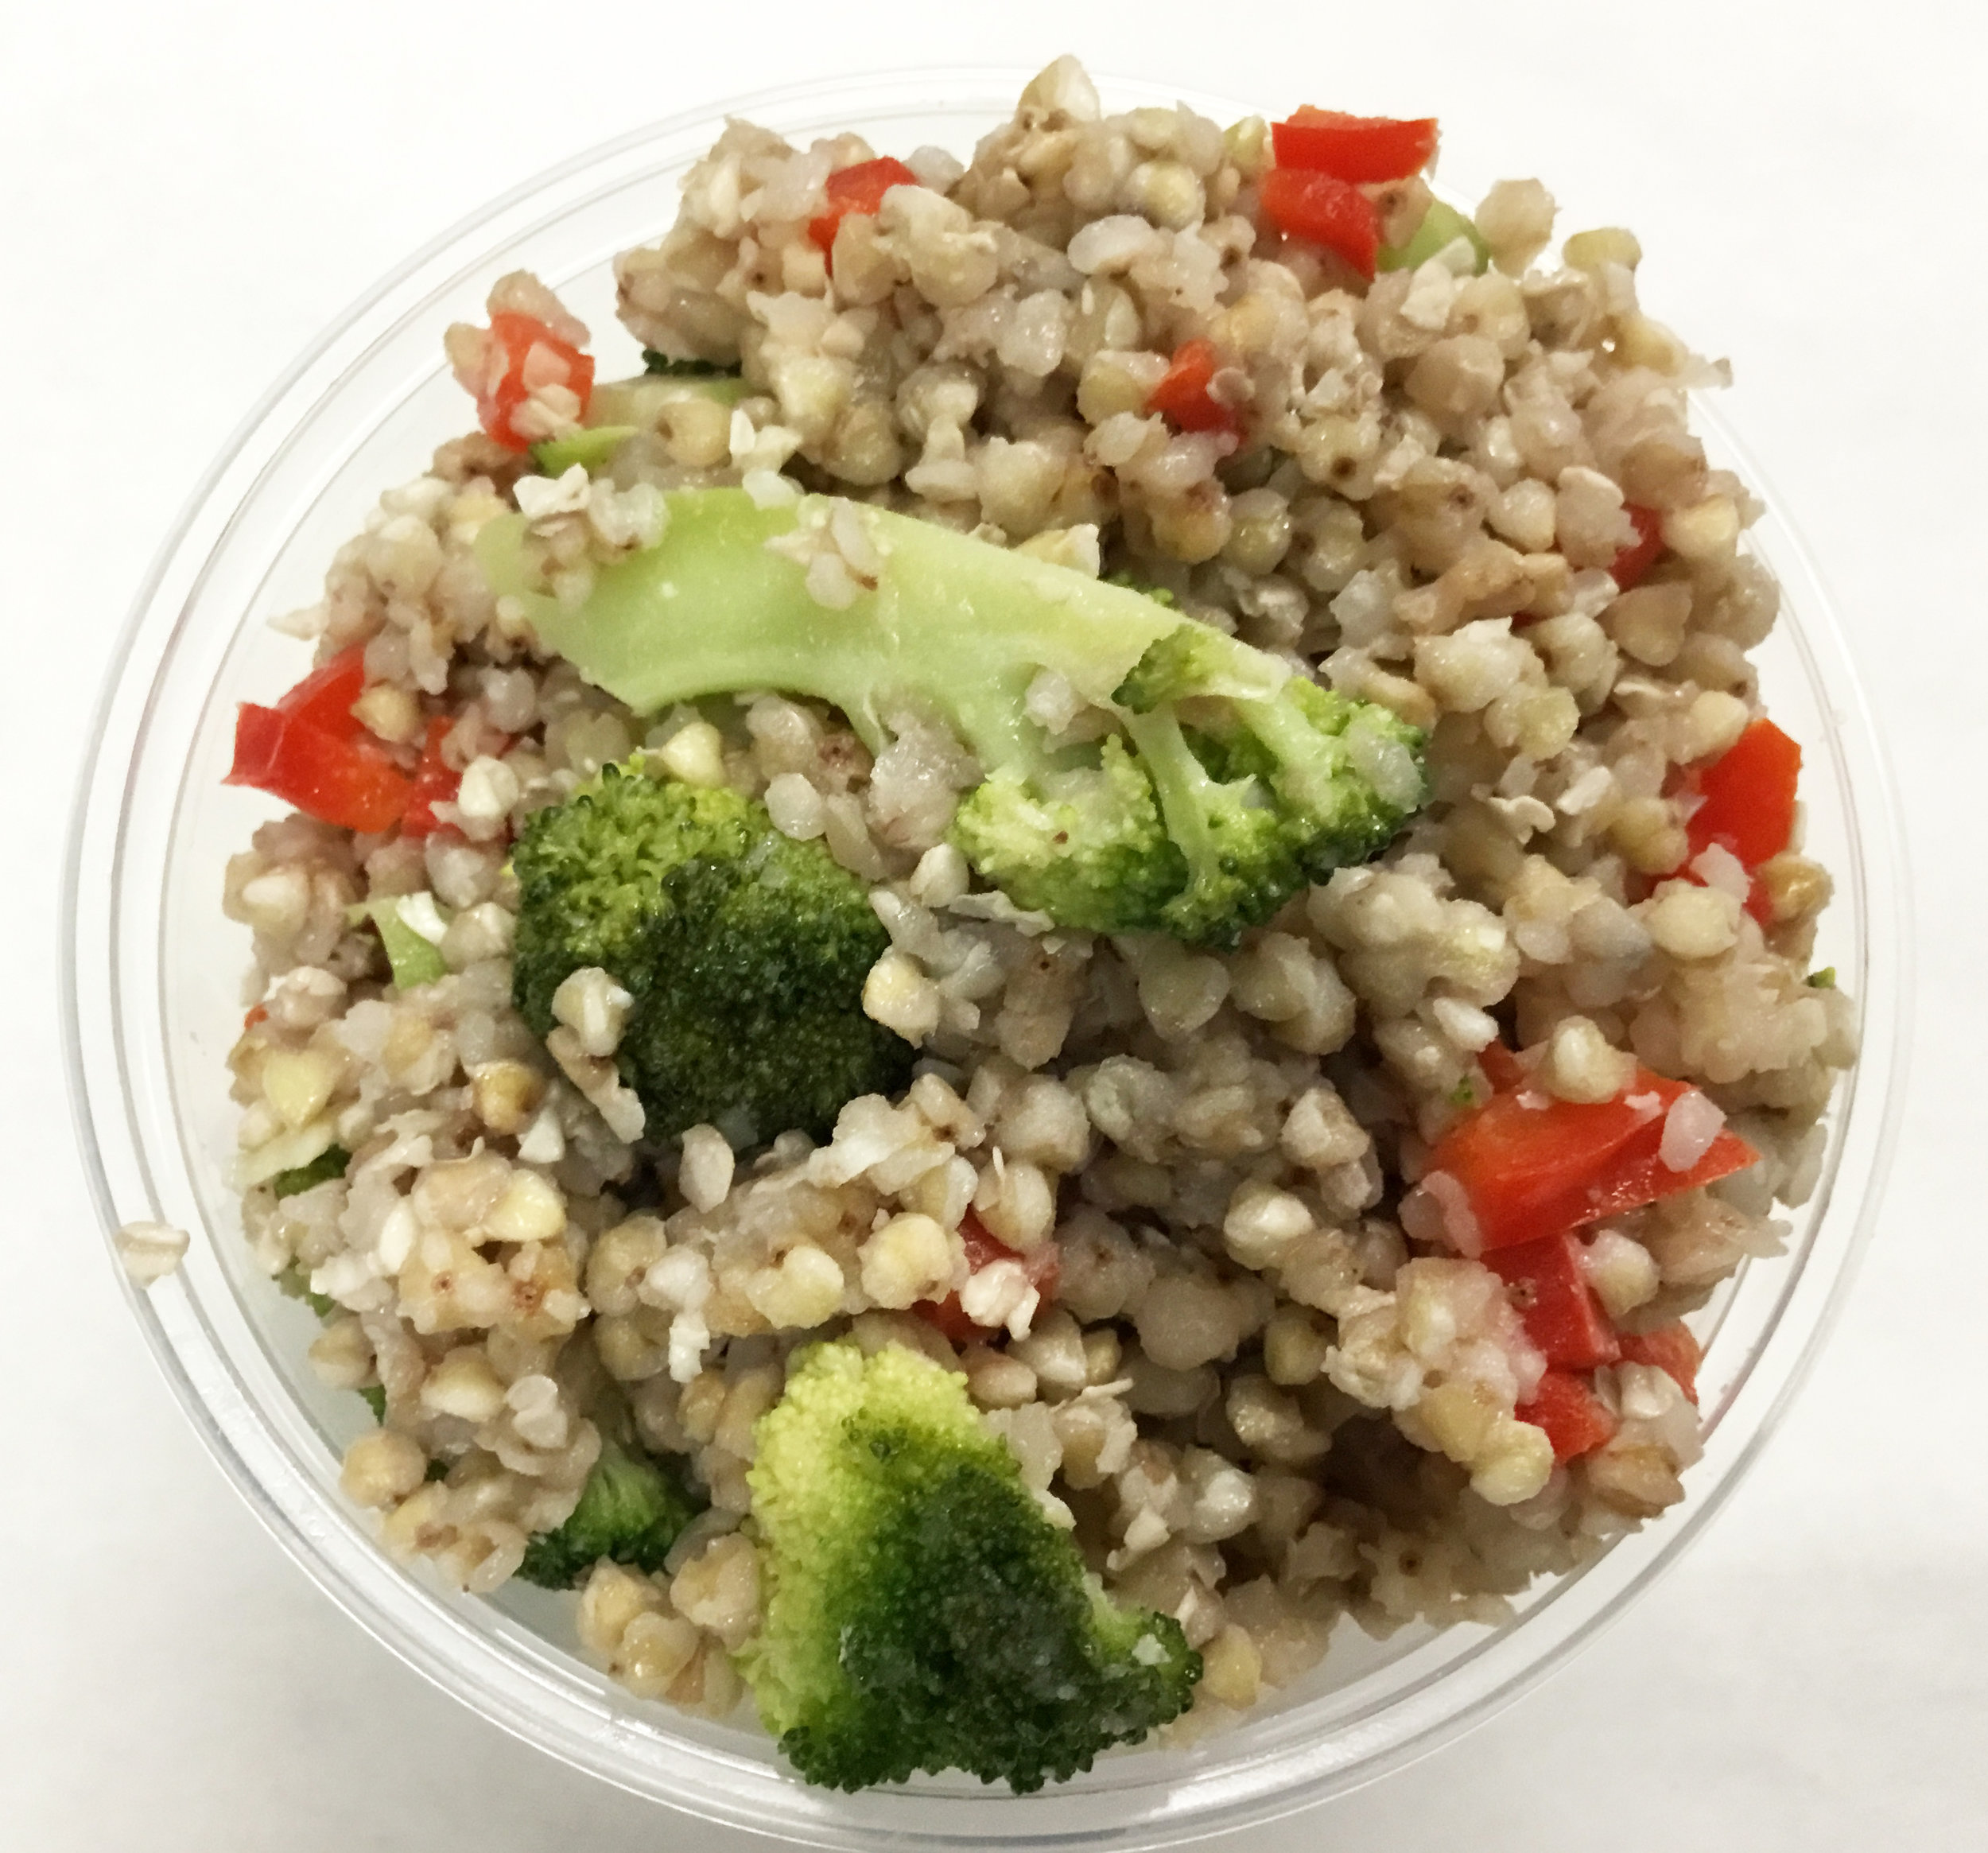 Buckwheat with broccoli, red bell pepper, garlic and a brown rice vinegar dressing.